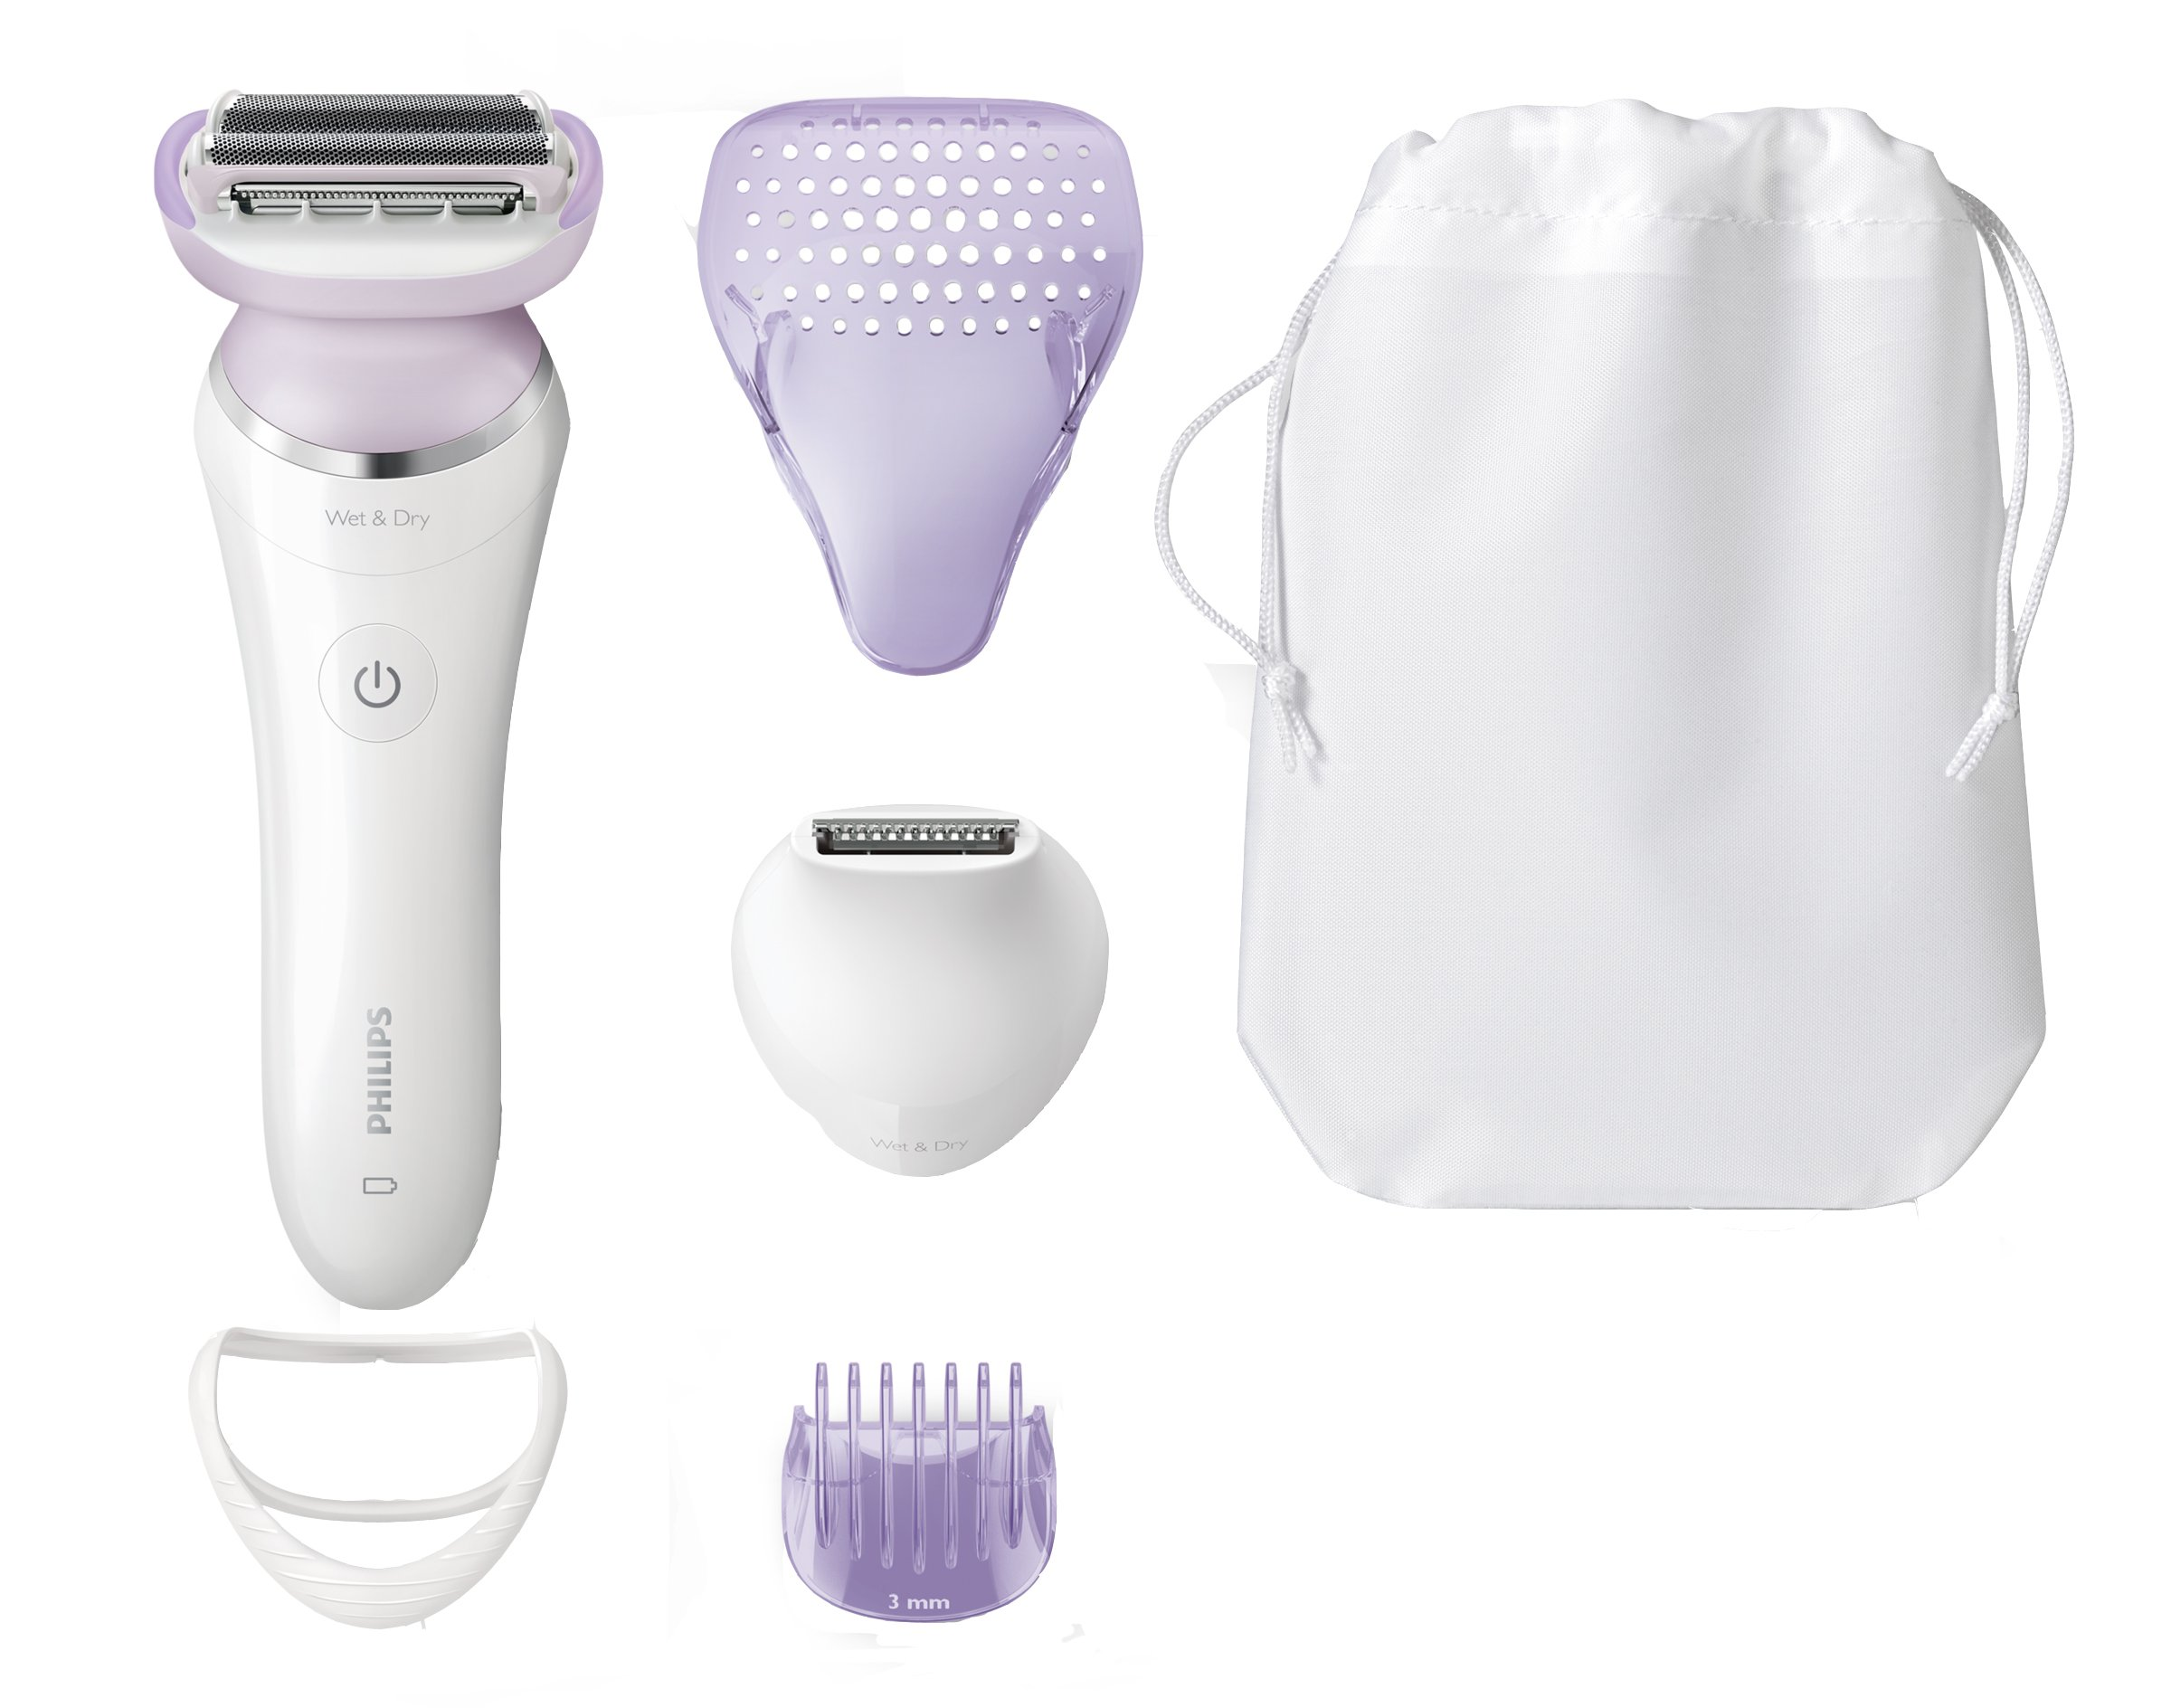 Philips SatinShave Prestige Women's Electric Shaver, Cordless Hair Removal with Trimmer (BRL170)